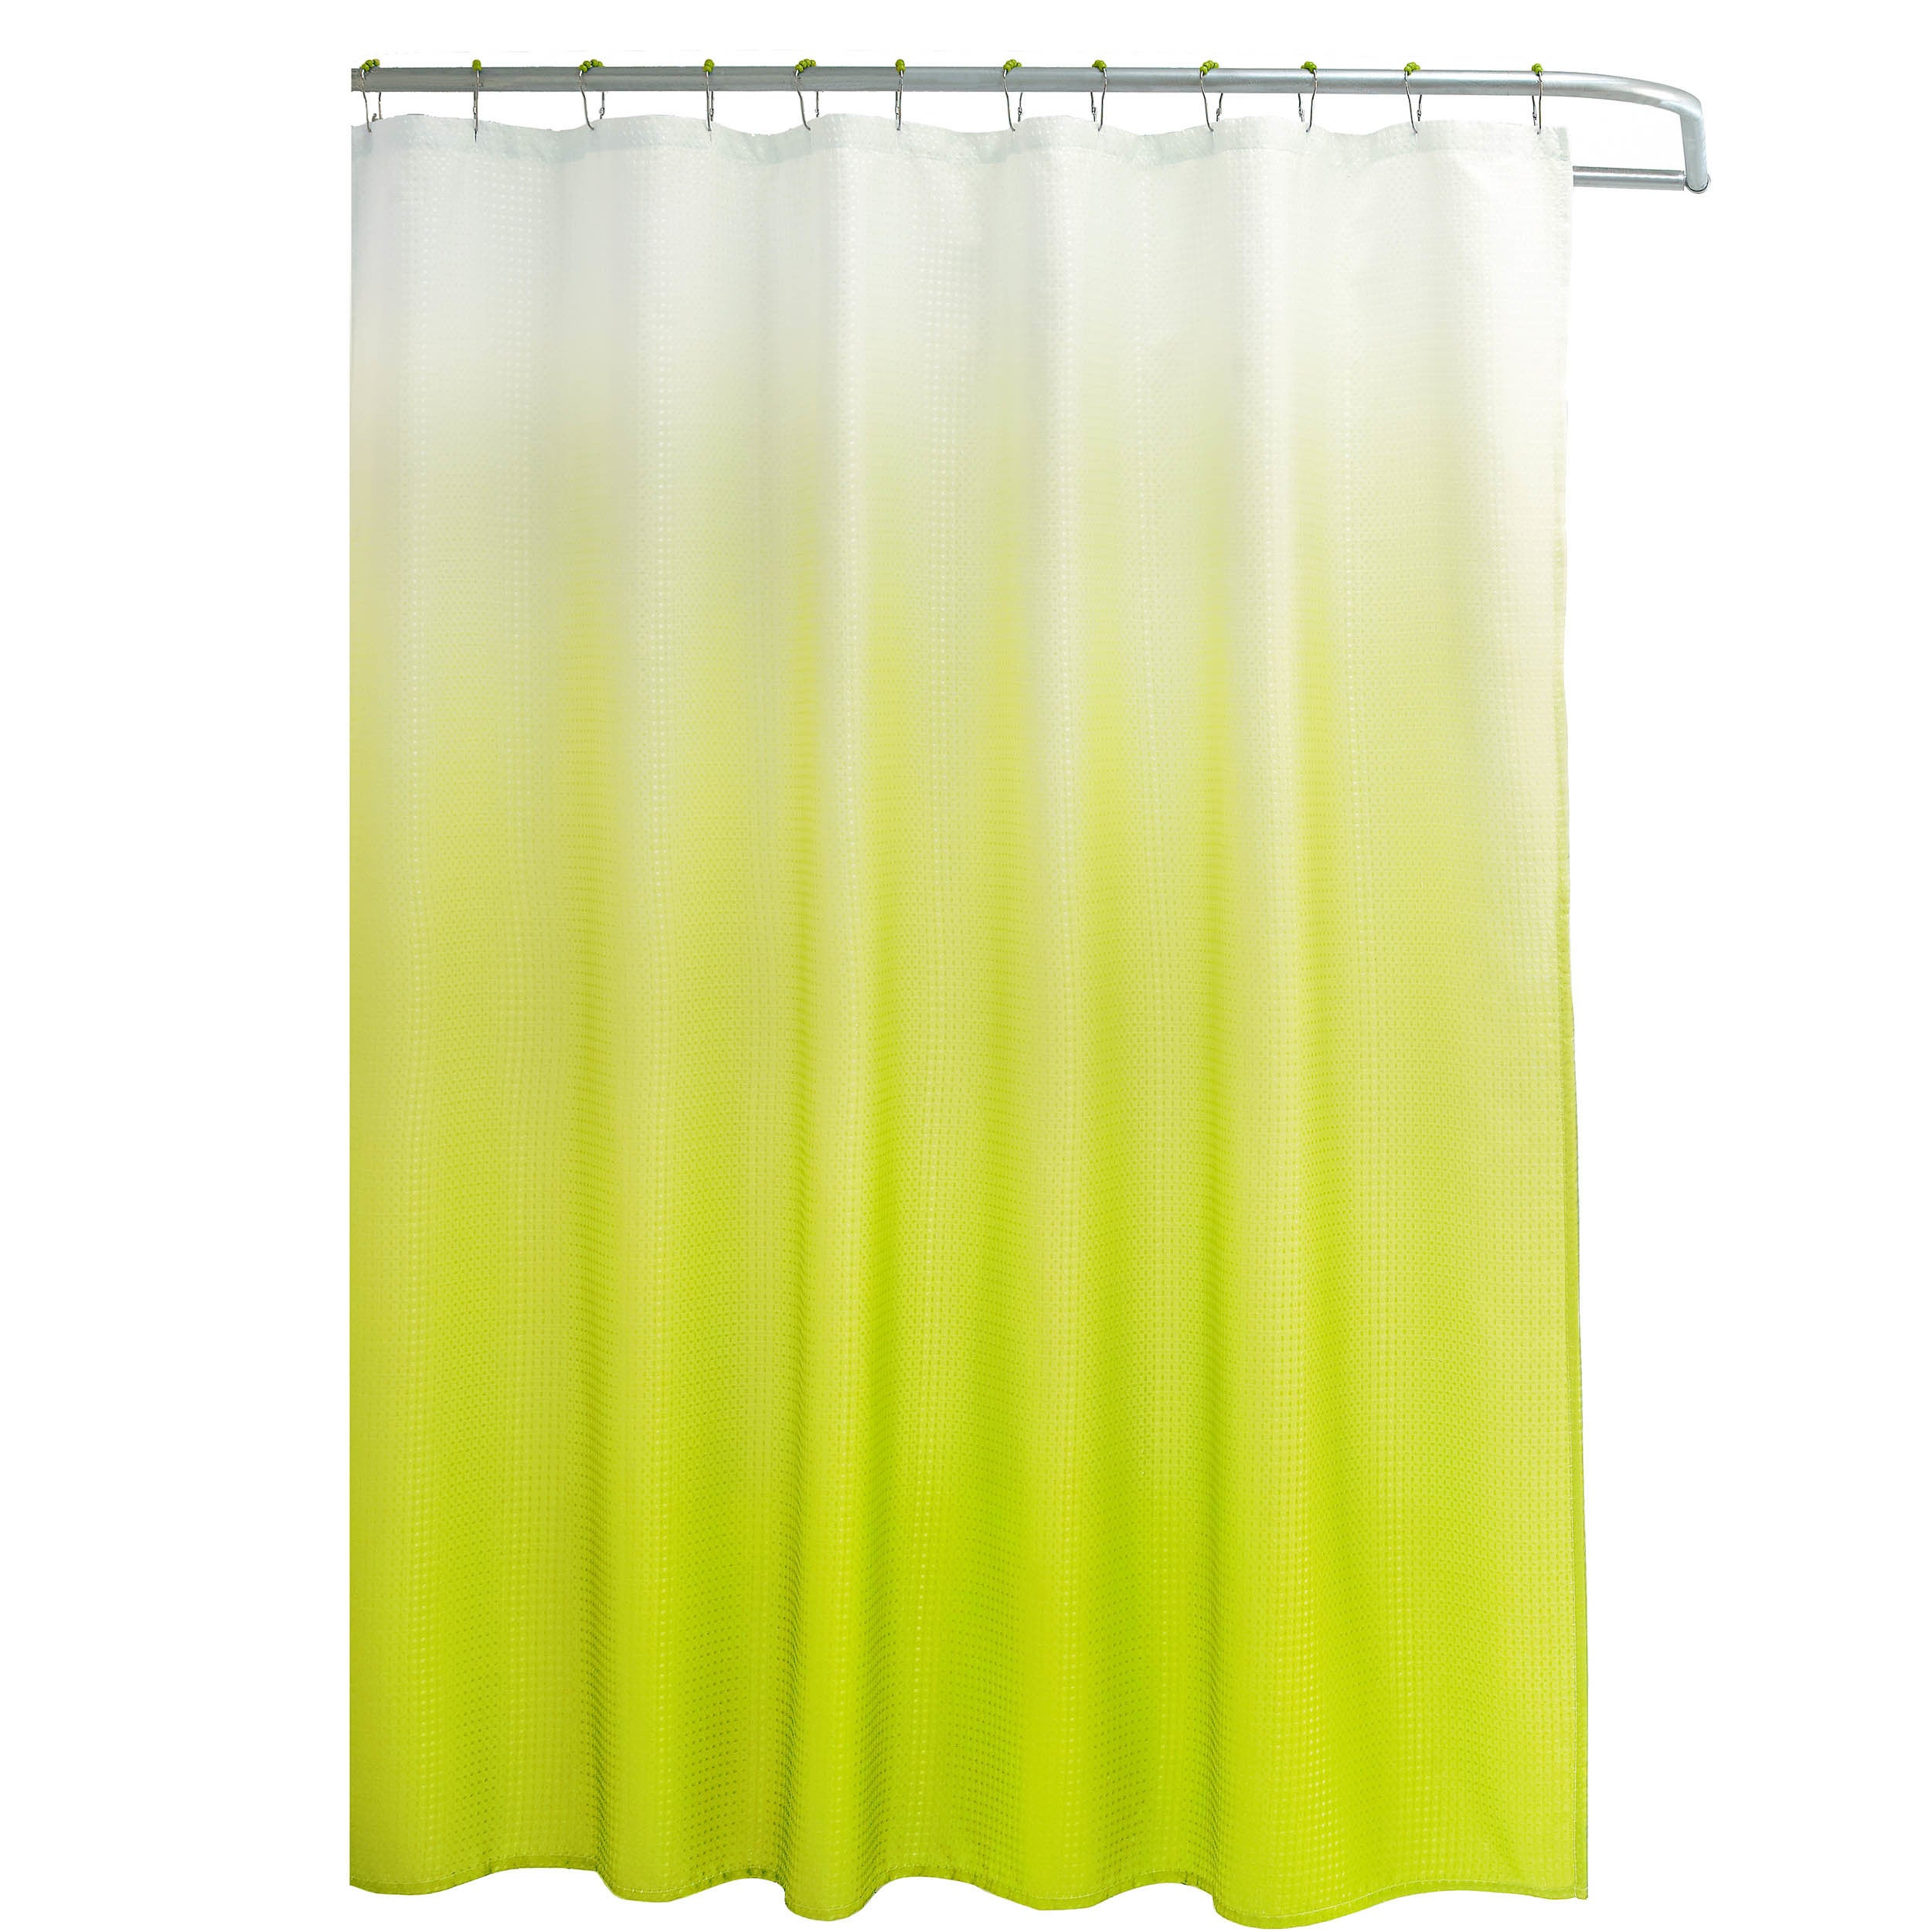 1cd9c05f7c4 Shop Creative Home Ideas Ombre Waffle Weave Shower Curtain w  12 Color  Coordinating Metal Rings - Free Shipping On Orders Over  45 - Overstock -  12876374